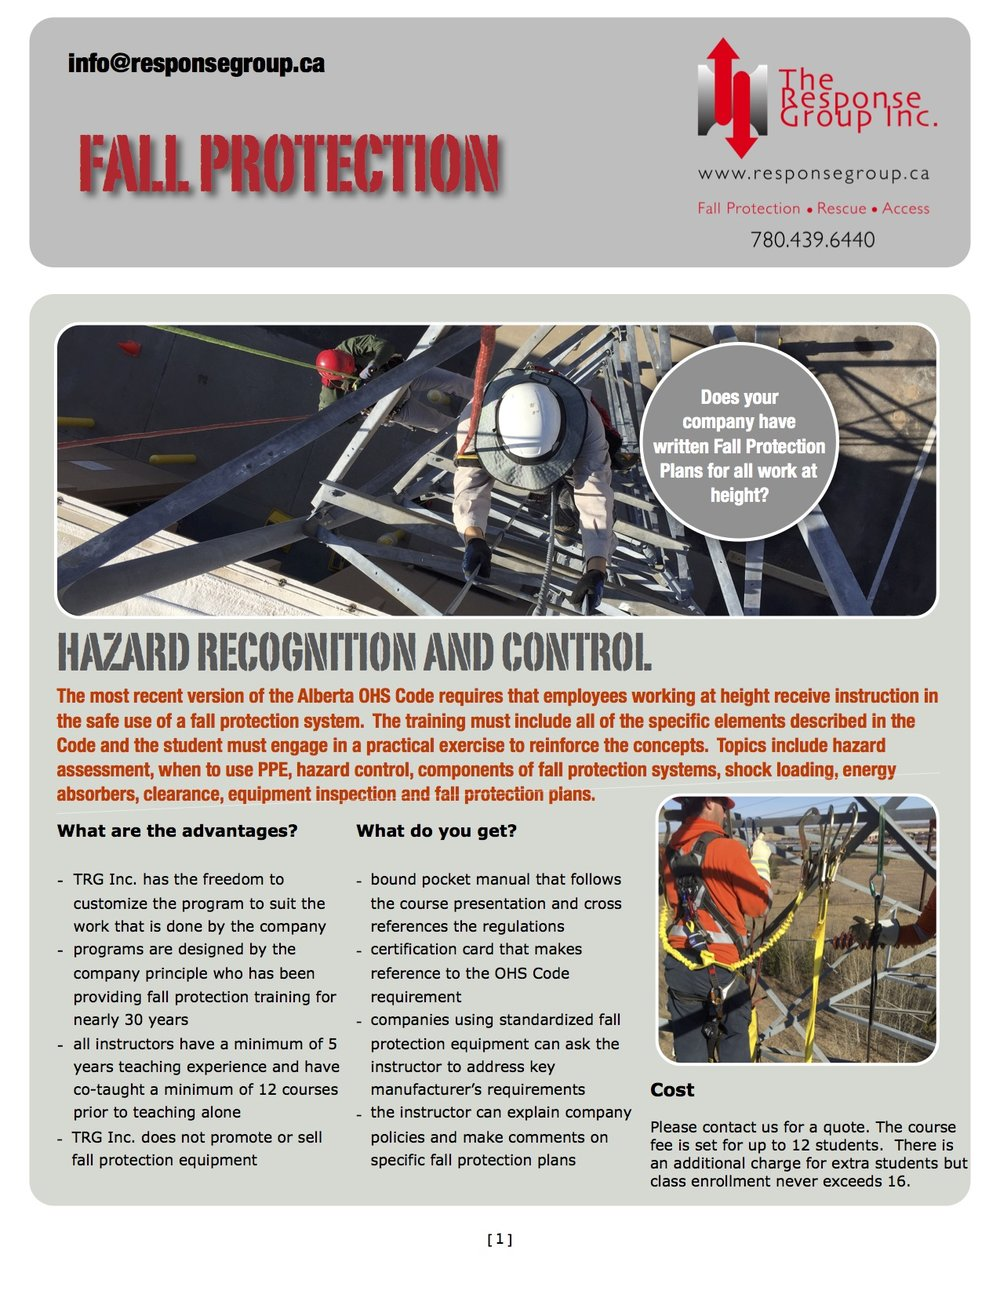 fall protection brochure jpeg.jpg